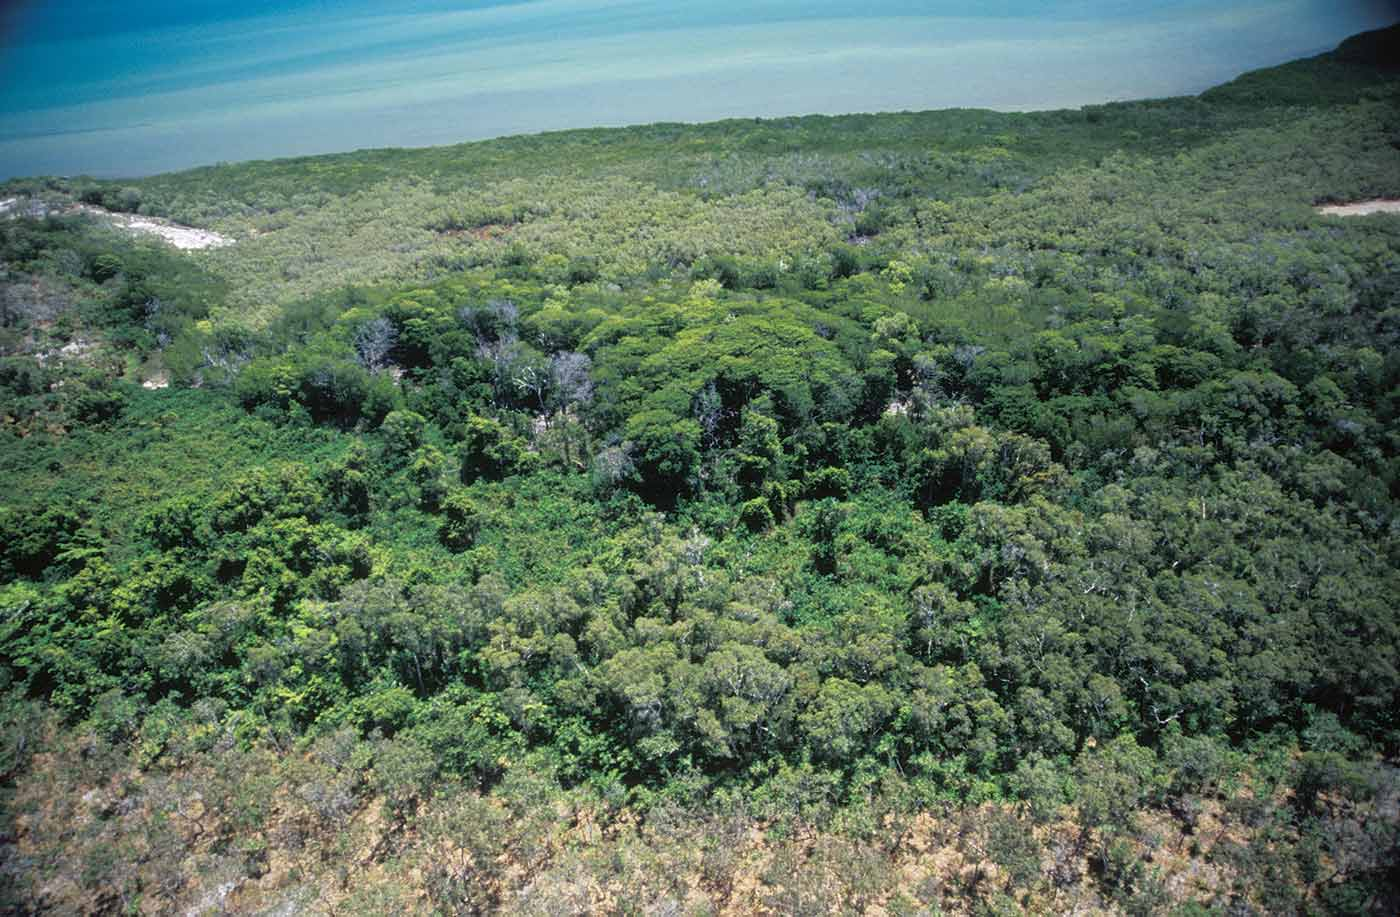 A colour photograph of an area of dense vegetation. The vegetation is thick and clumped, possibly suggesting a swamp area. Some of the larger clumps cast shadows on the other vegetation.  - click to view larger image